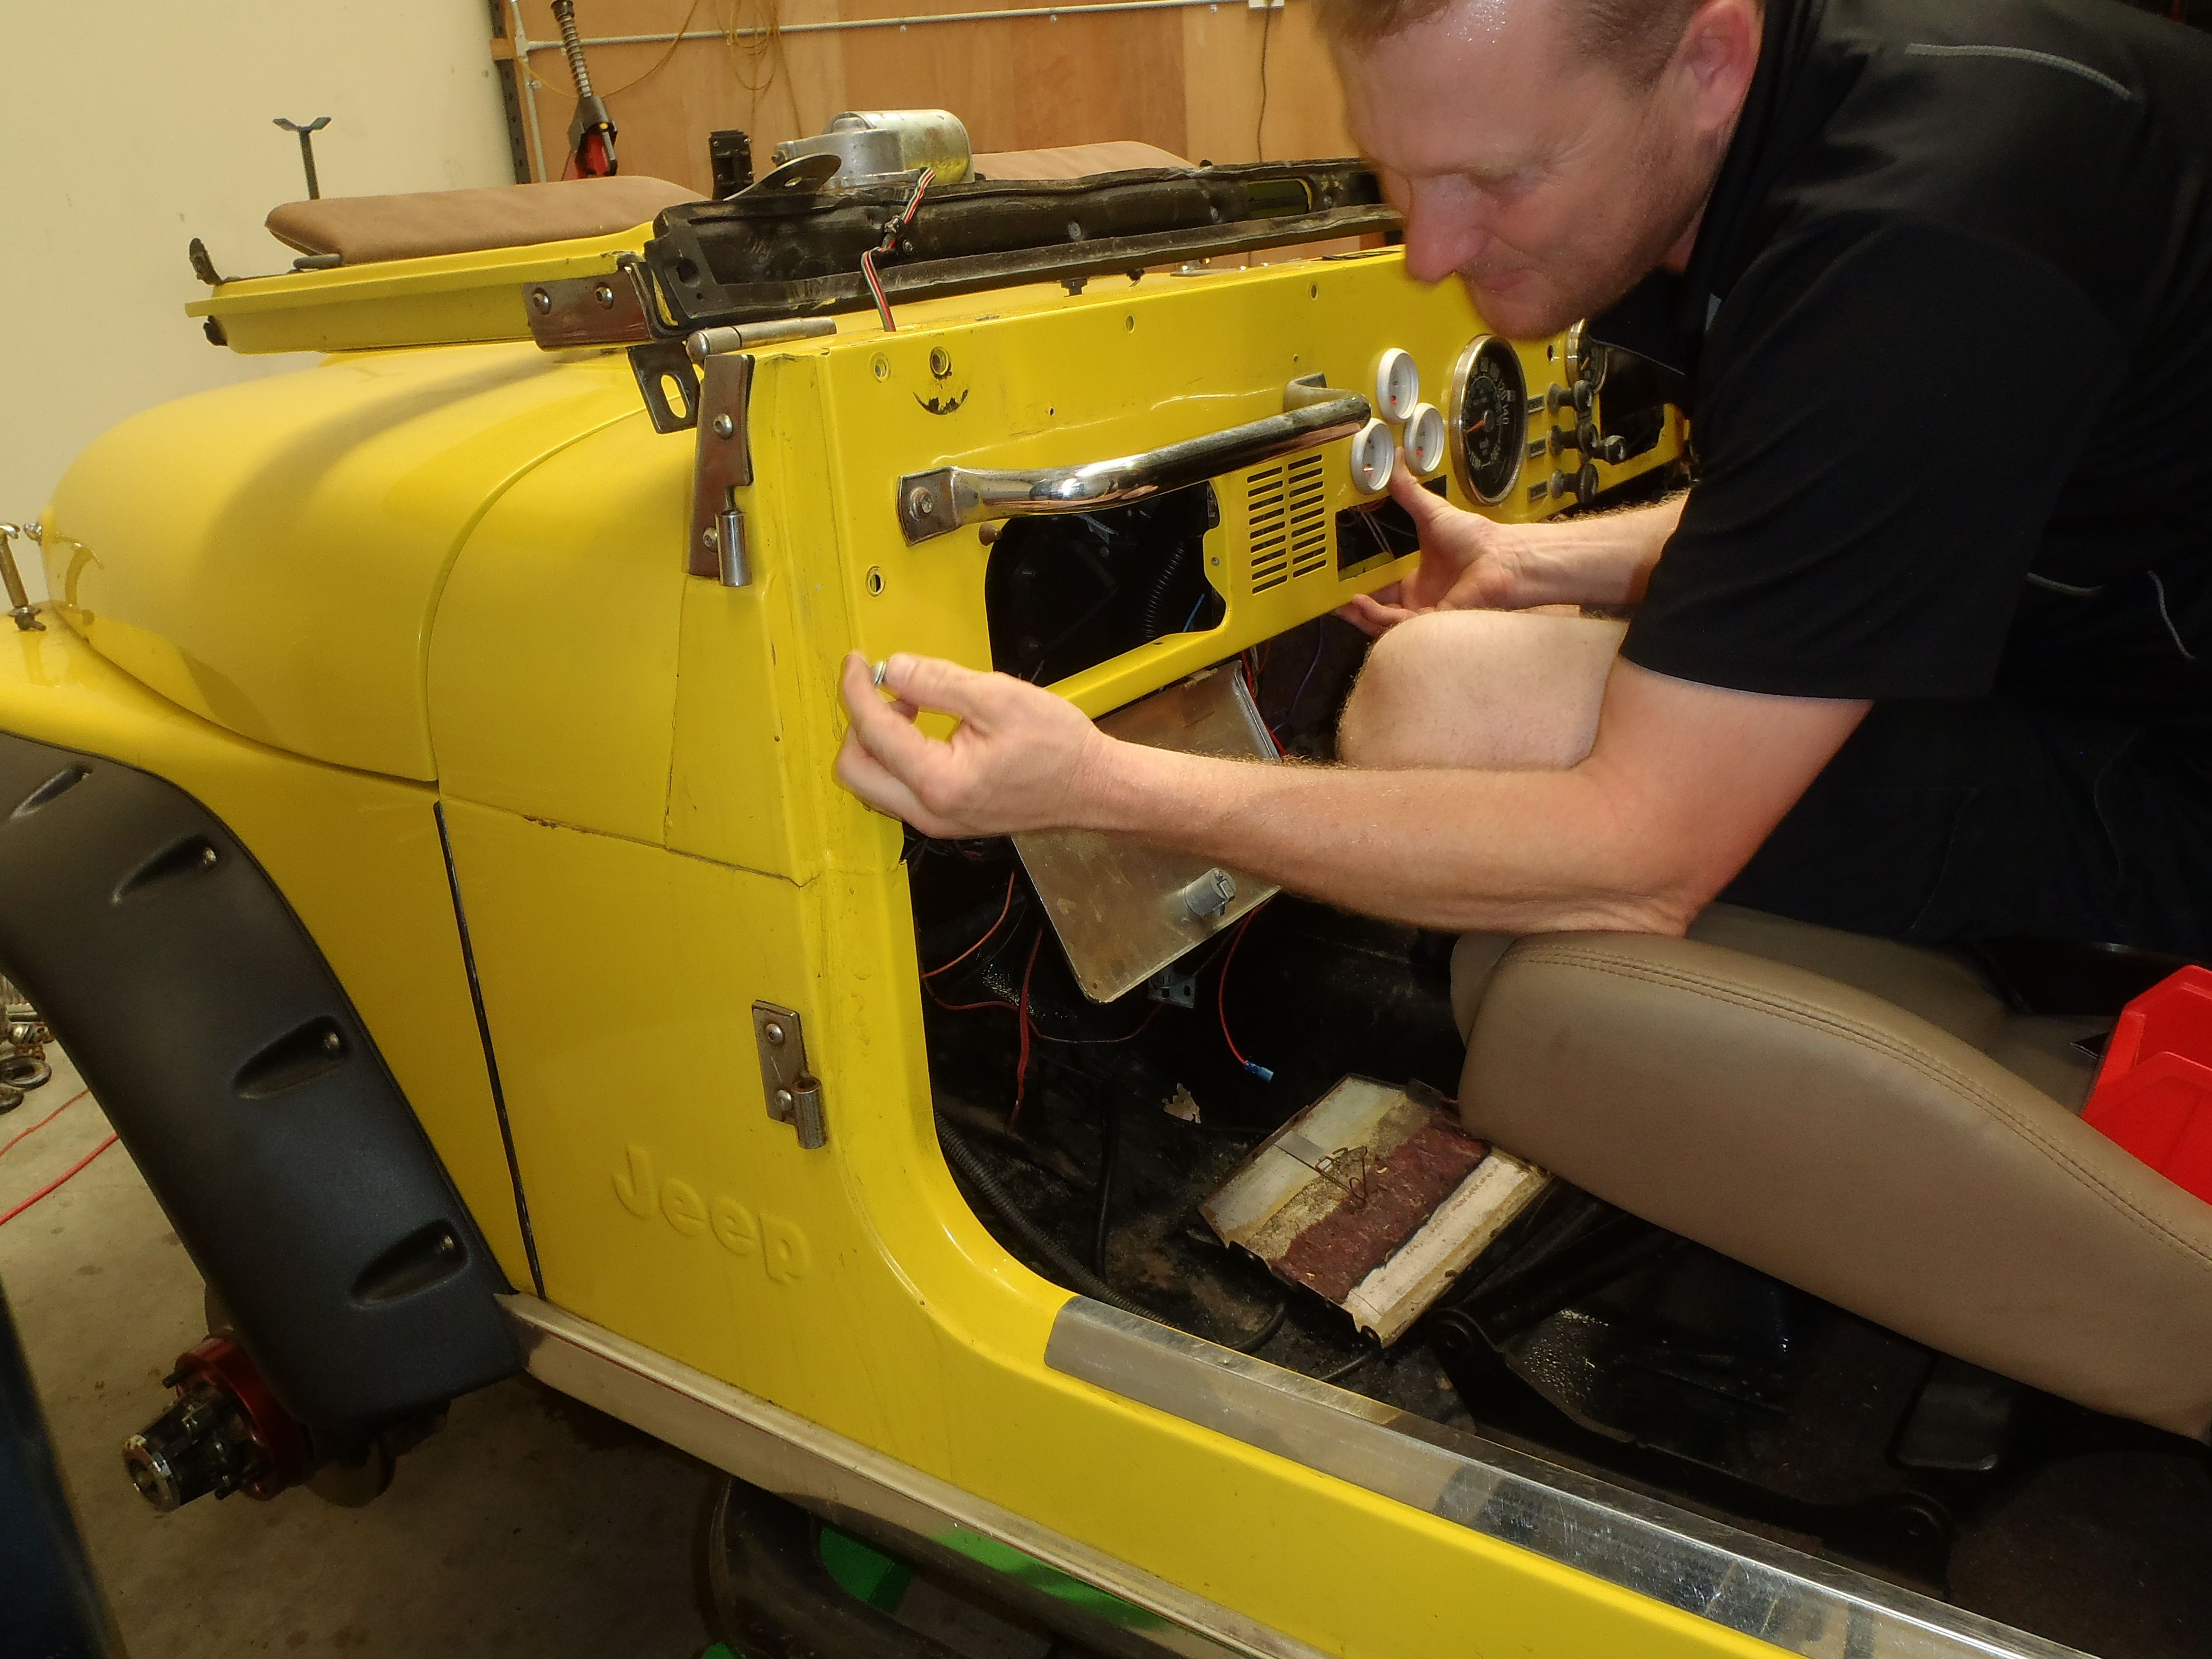 Todd Avers Of Seven Slot Off Road Providing Maintenance And Wiring 1976 Jeep Cj7 I258 Engine Repairs On The